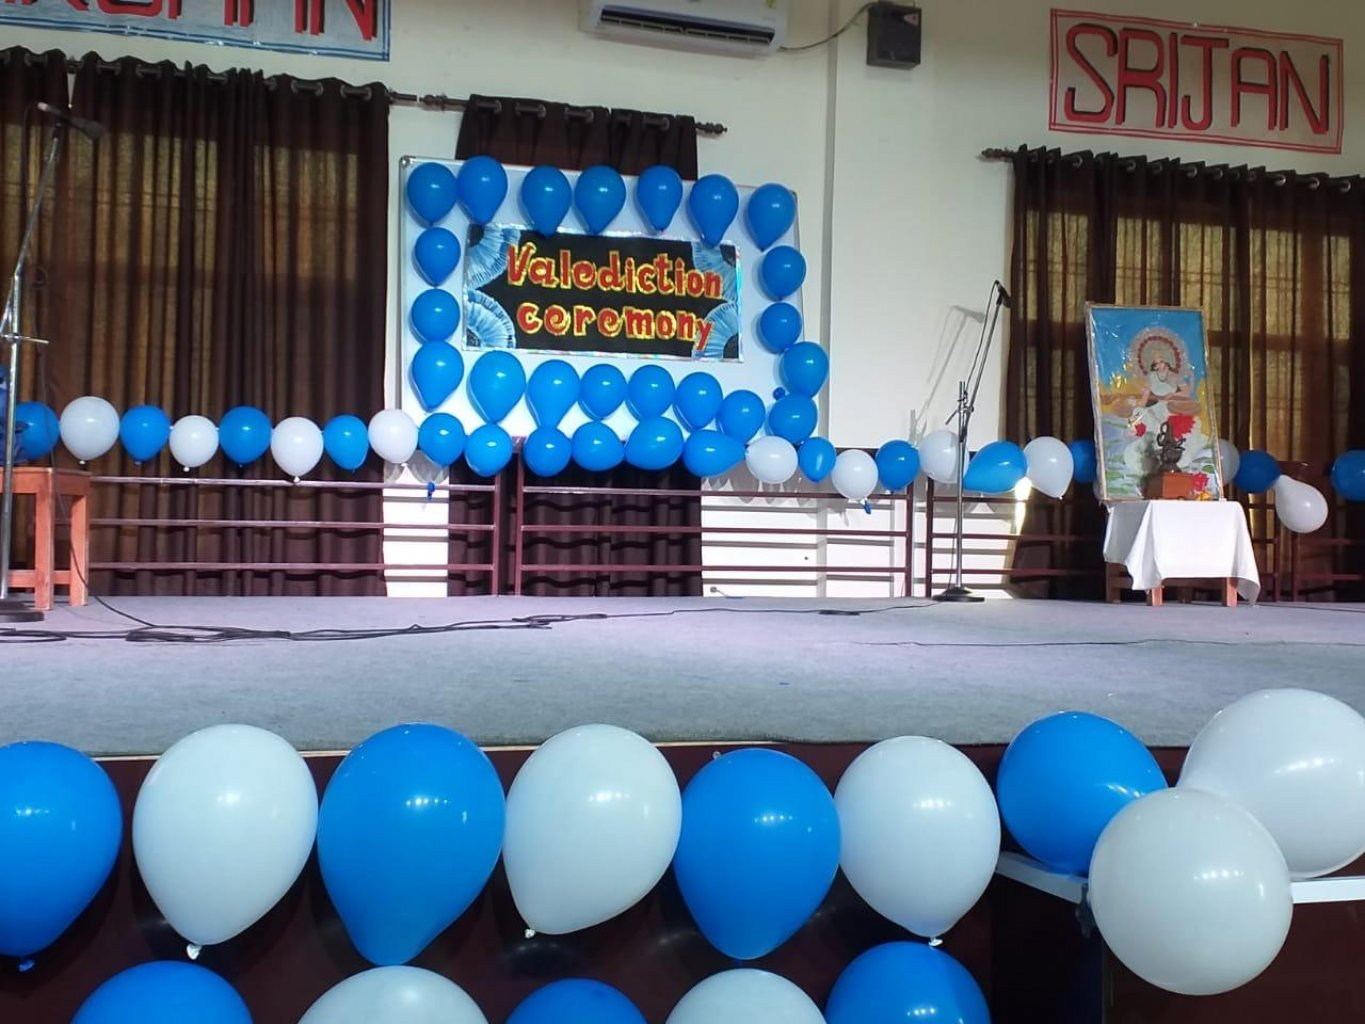 2K19 FAREWELL CEREMONY